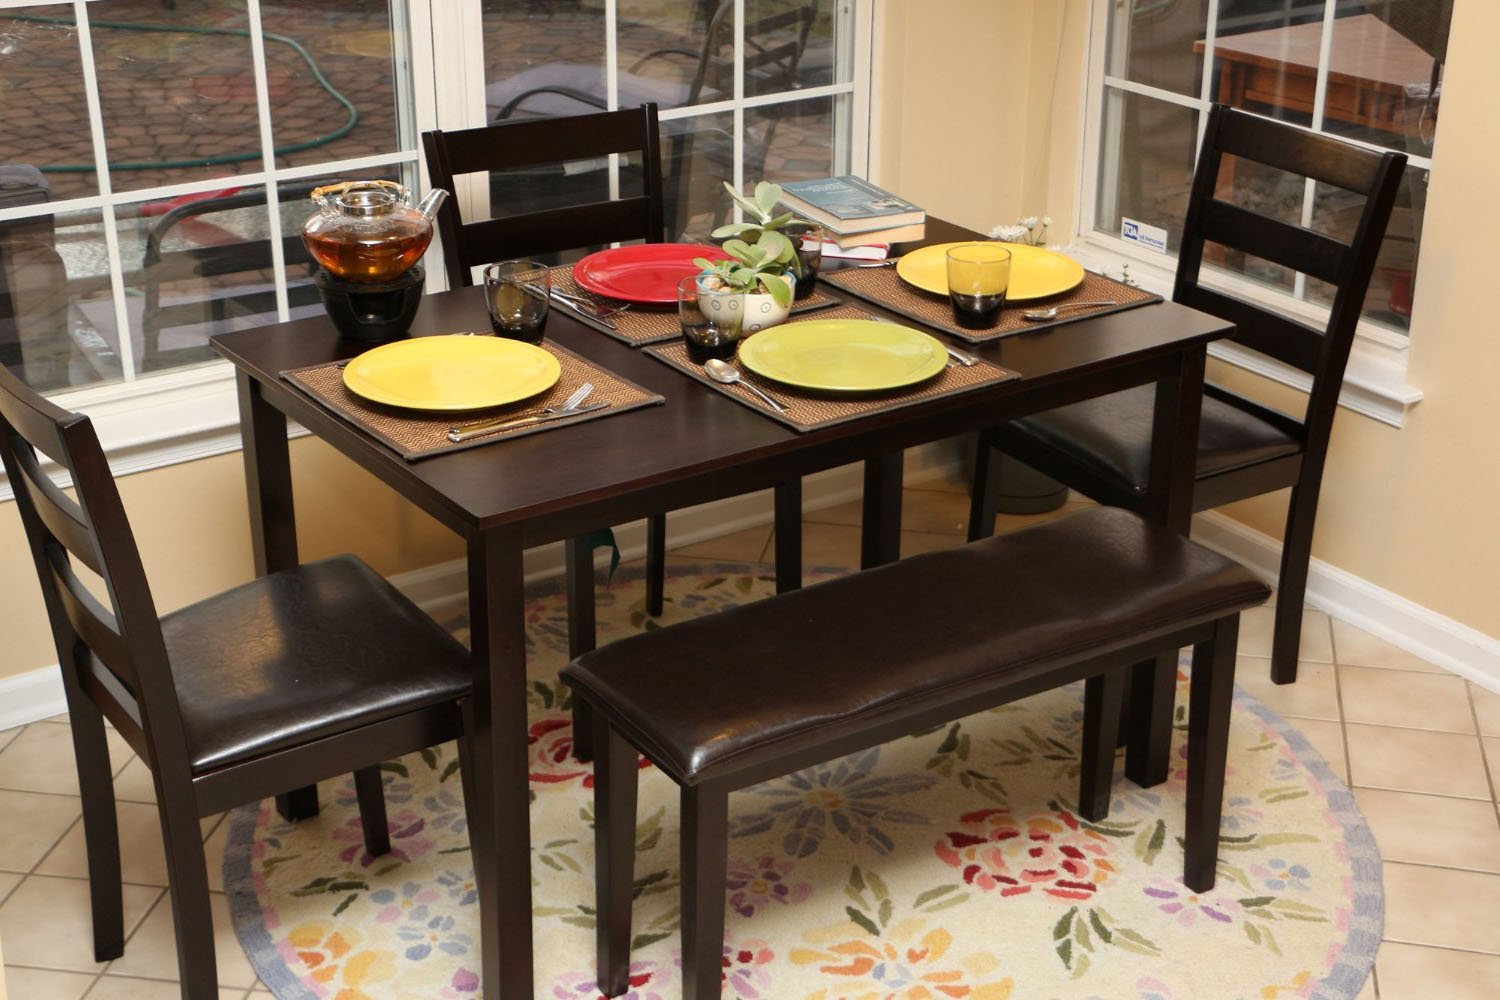 amazoncom 5pc dining dinette table chairs u0026 bench set espresso brown 150232b table u0026 chair sets